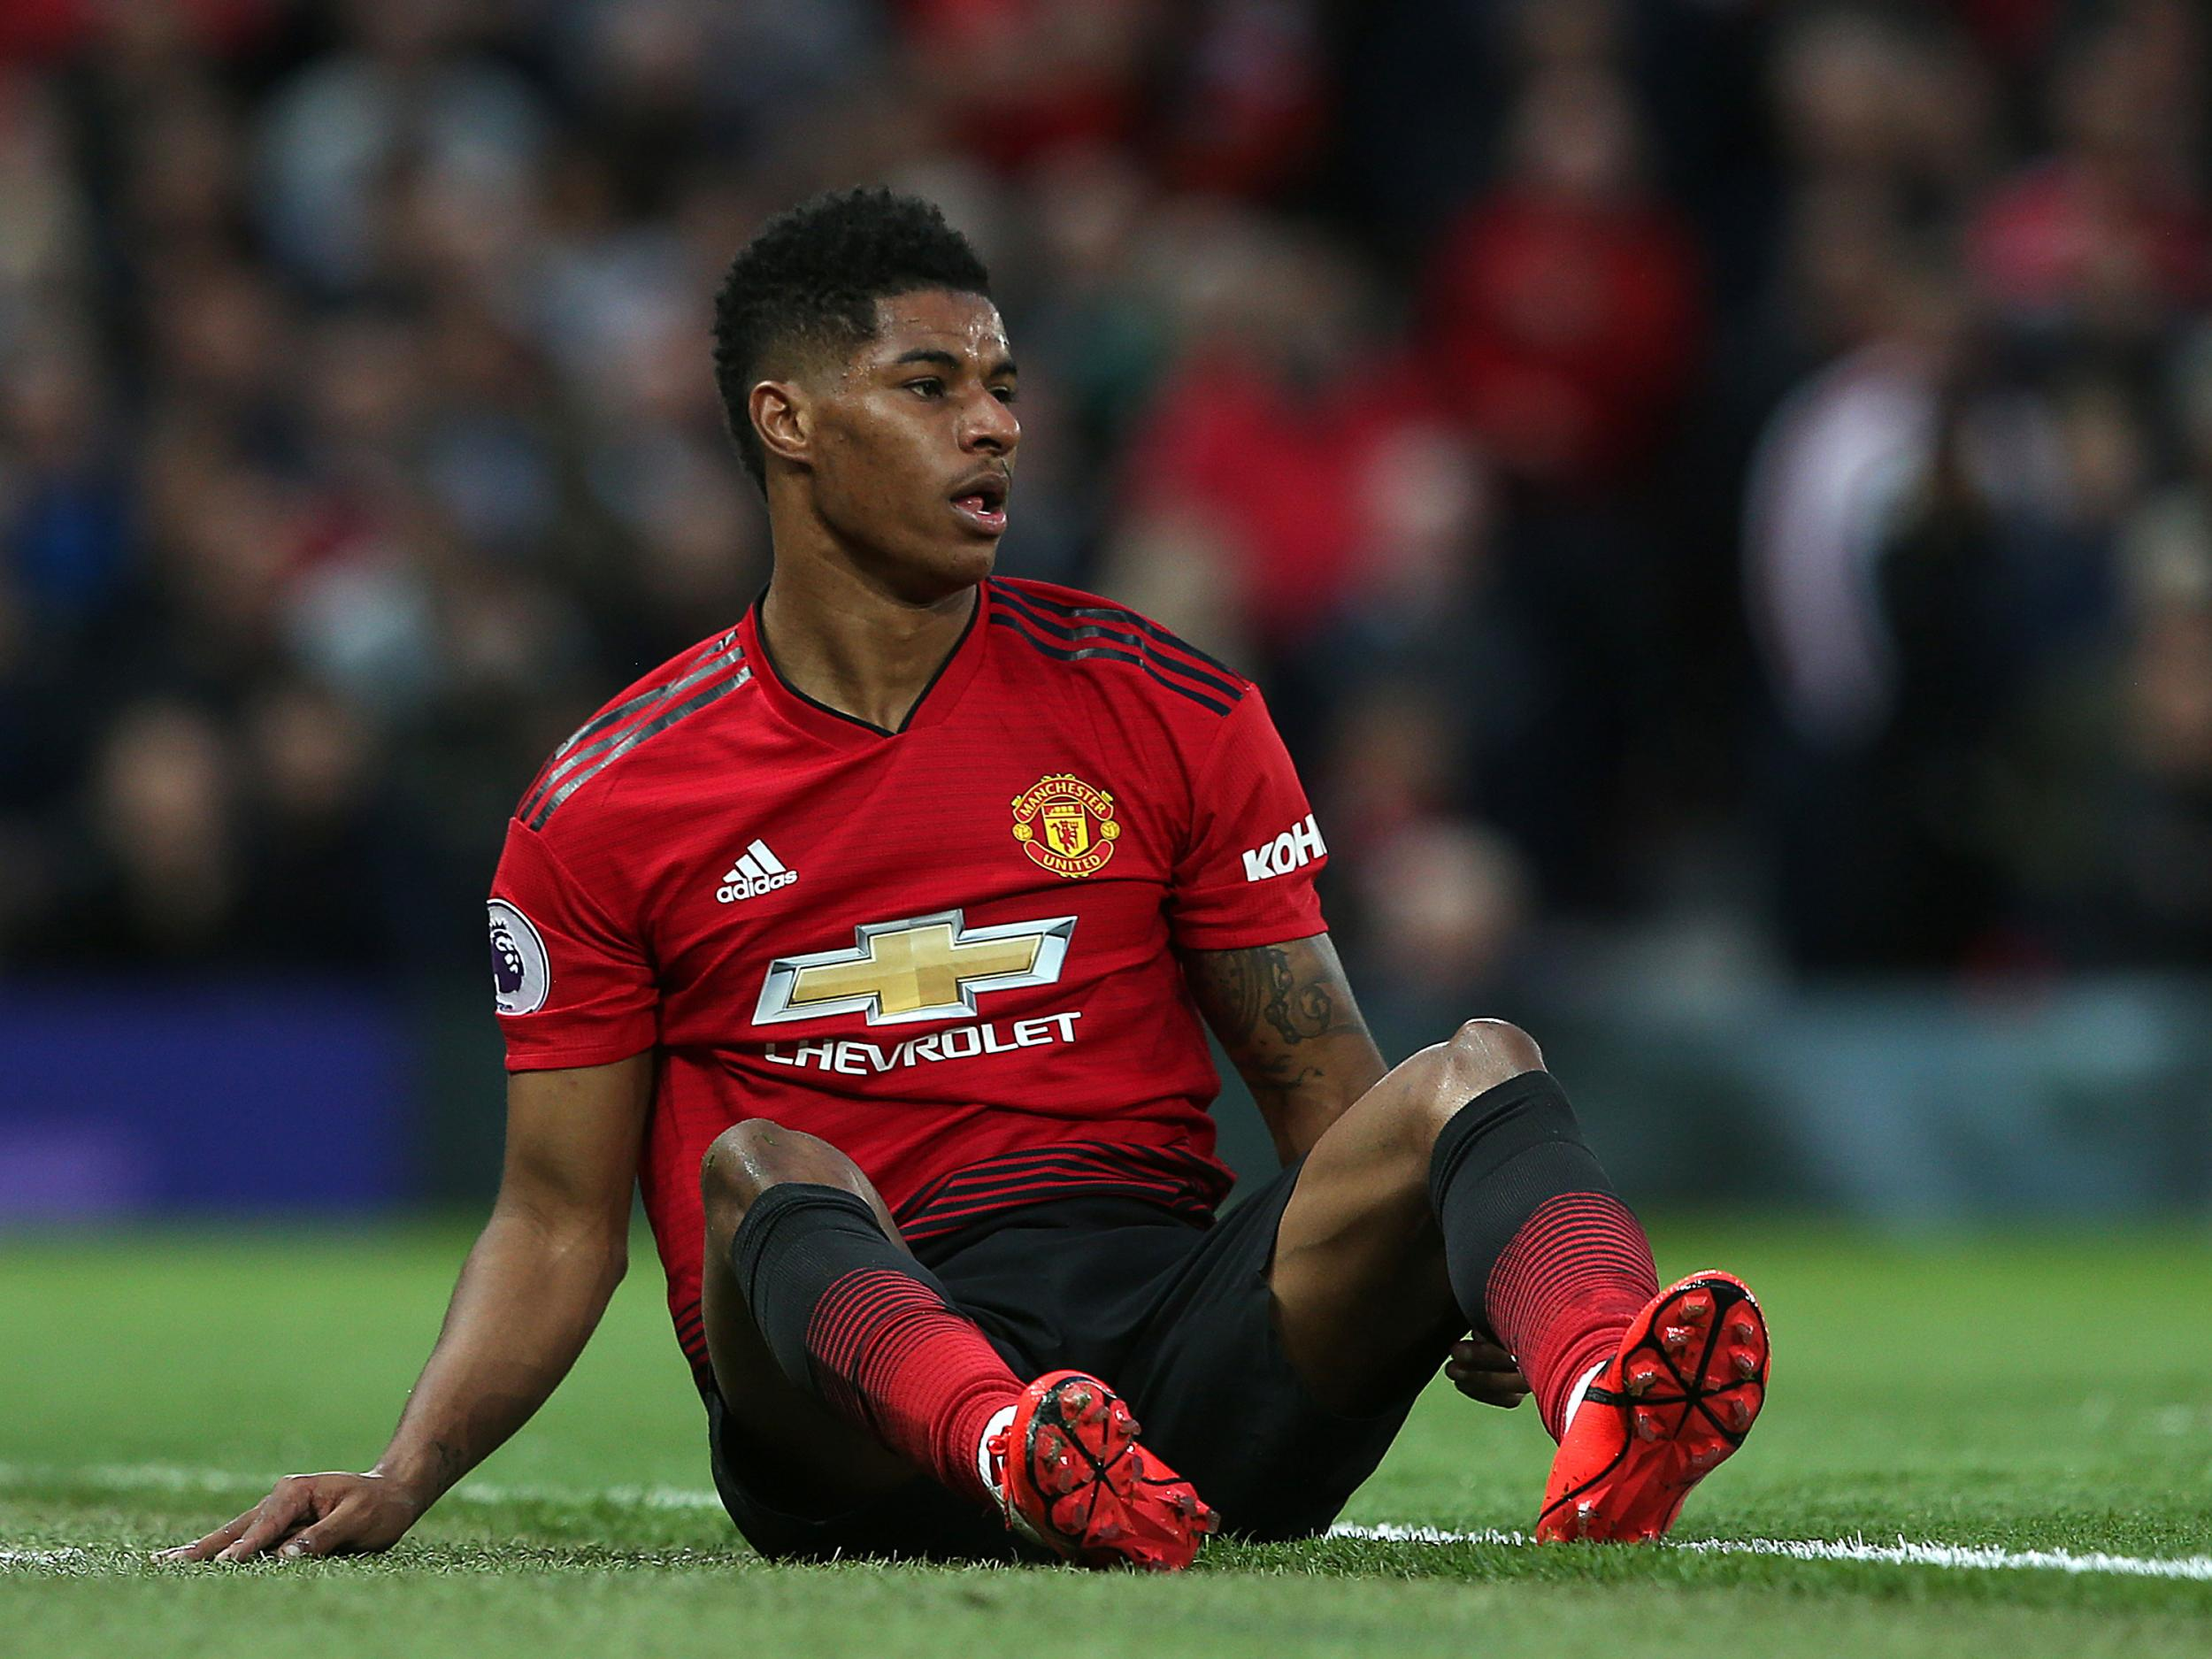 Manchester United vs Manchester City: Marcus Rashford critical of derby display: 'It's not right'